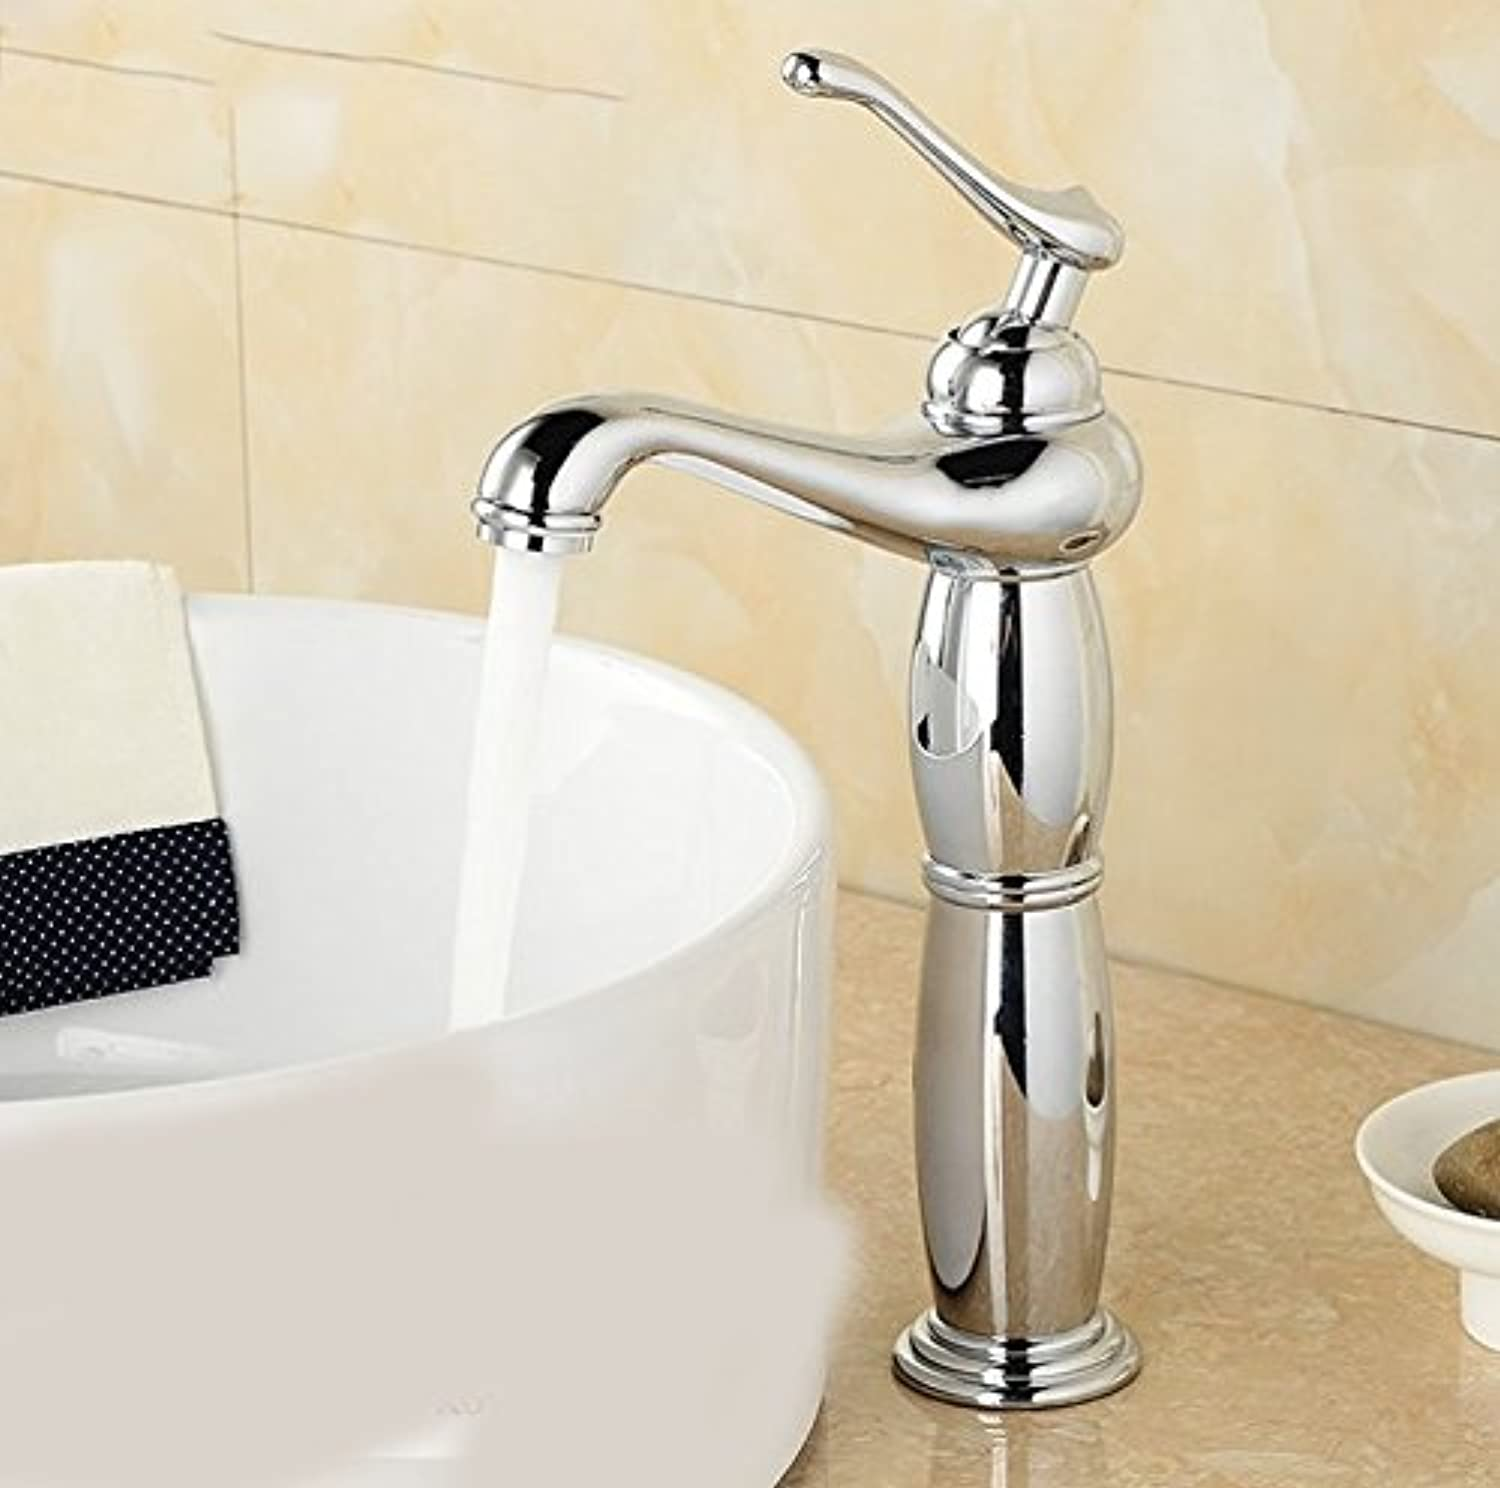 Hlluya Professional Sink Mixer Tap Kitchen Faucet The wash-basin, single handle single hole, the copper surface, cold and hot tub, sink faucet, D.